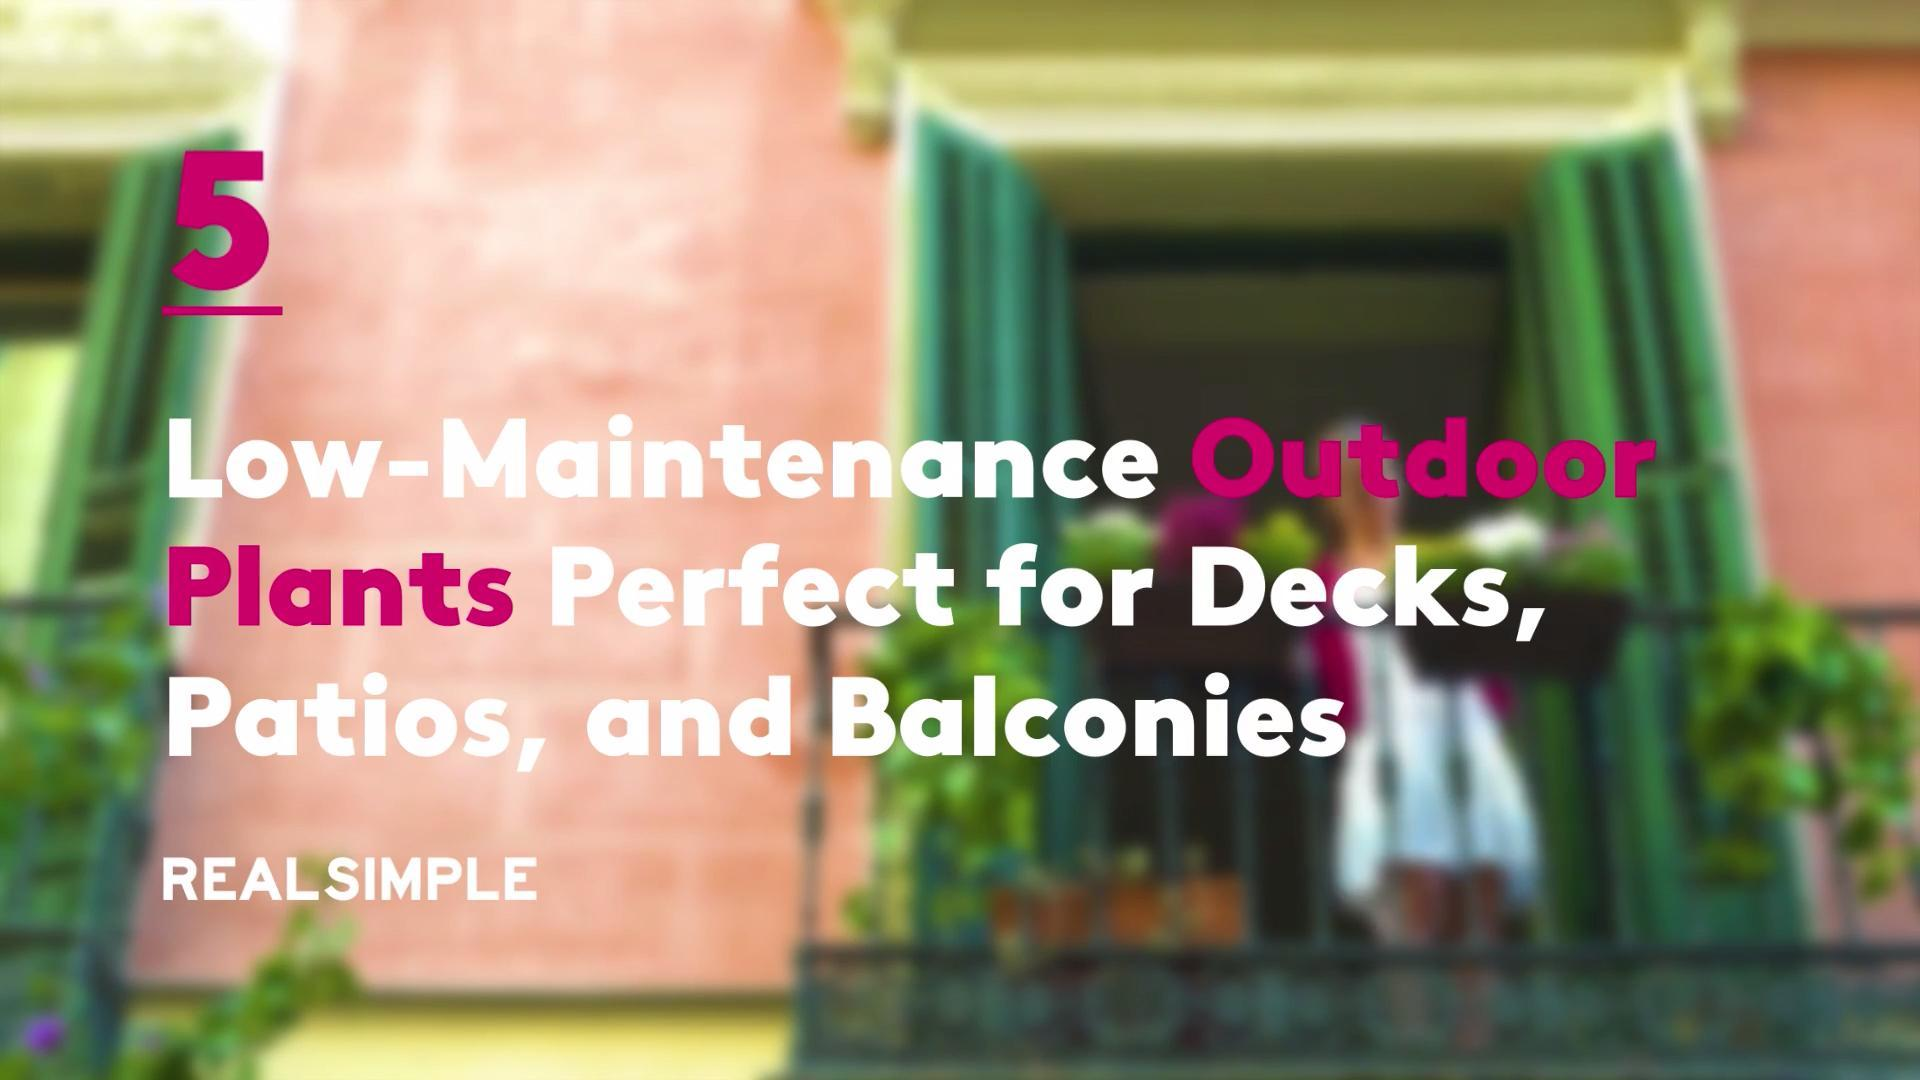 5 Low-Maintenance Outdoor Plants Perfect for Decks, Patios, and Balconies